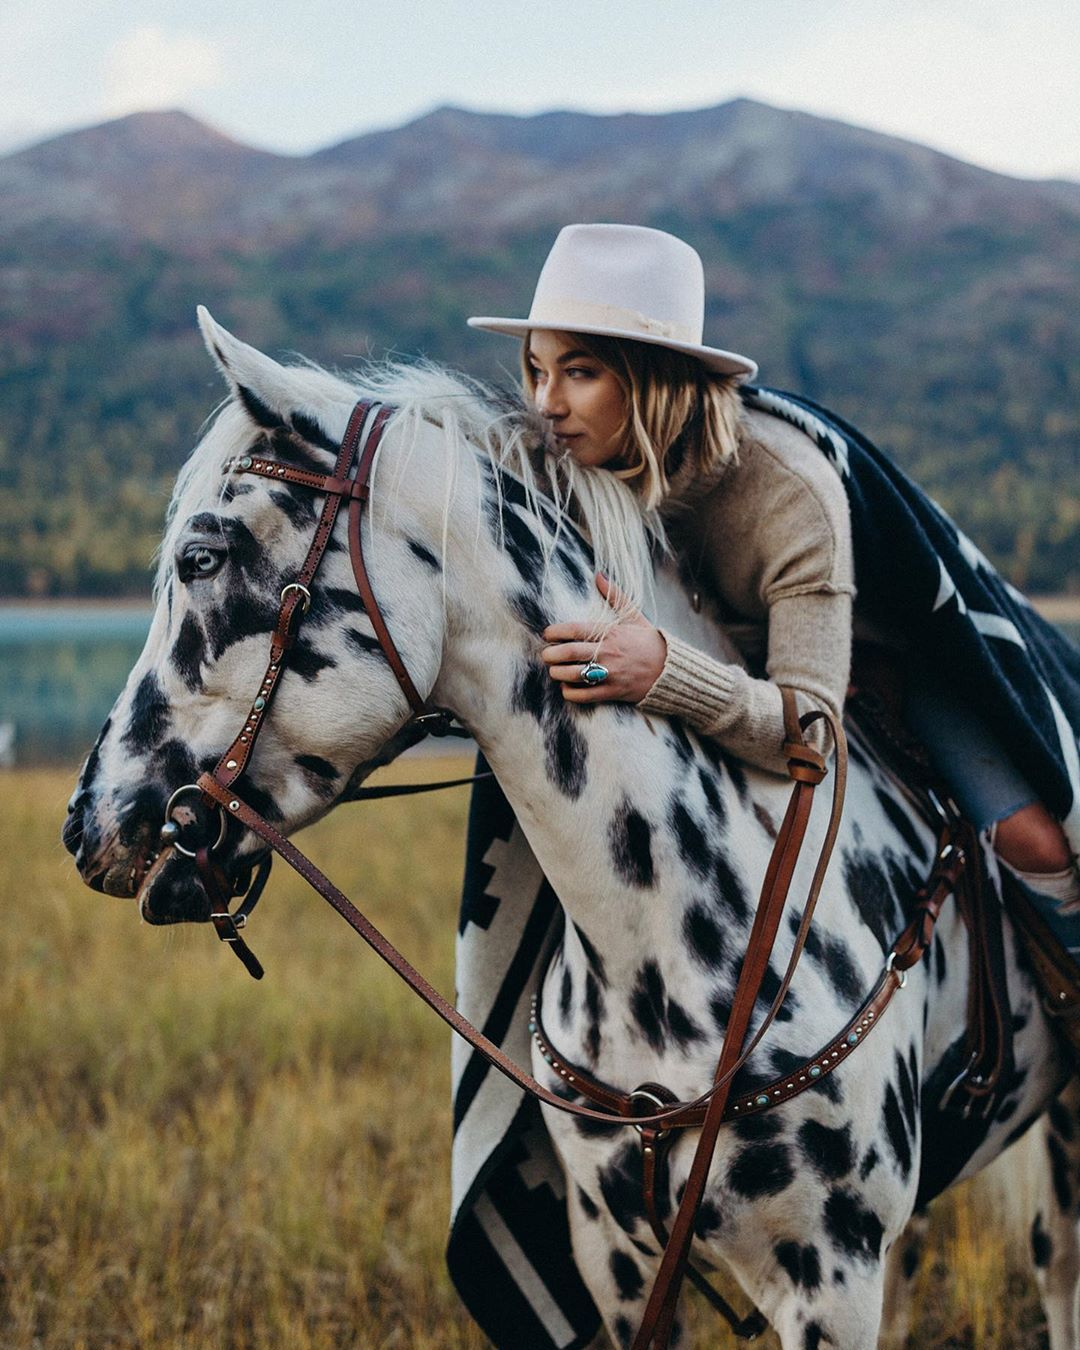 """Photo of Alaska Photographer on Instagram: """"So lucky to have this babe boss-lady, horse-mom as a friend. Double tap if you love mountains, horses, @pendletonwm, or boss babes. ✨"""""""